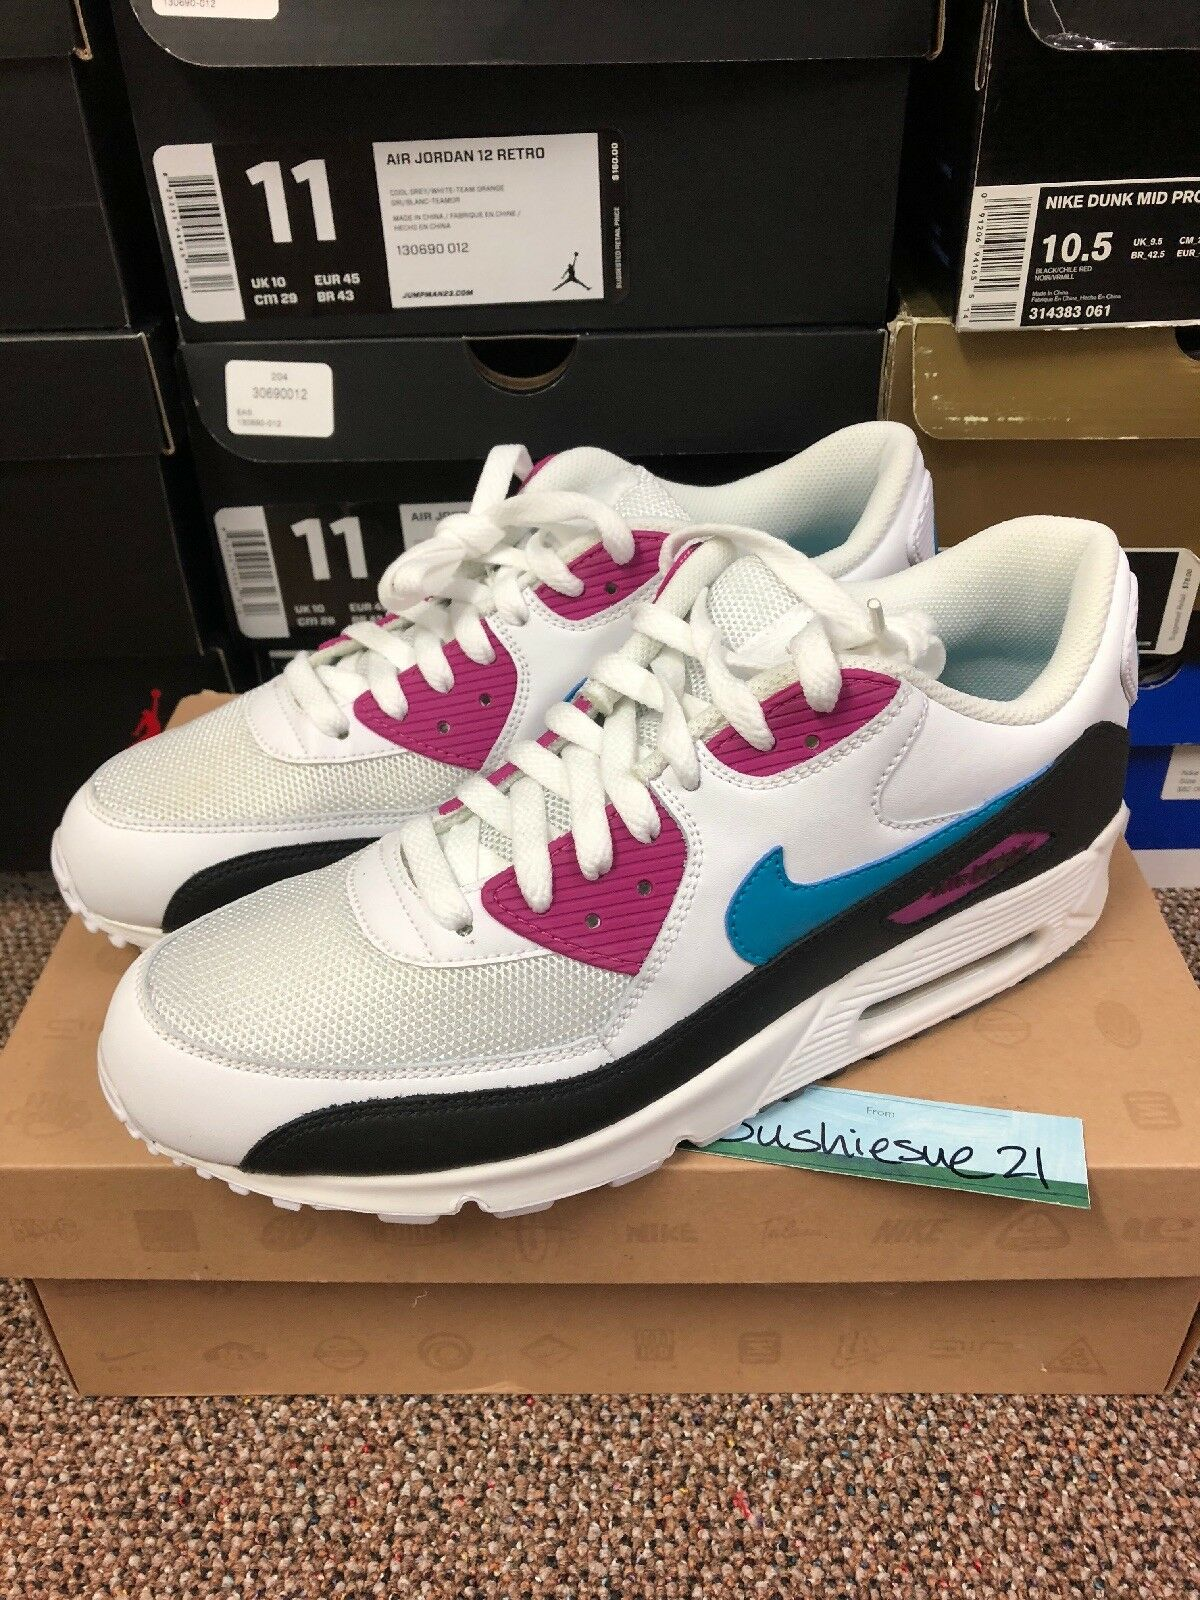 Nike Air Max 90 Turquoise Pink 10.5 Infrared Grey Off White Cork Curry Atmos